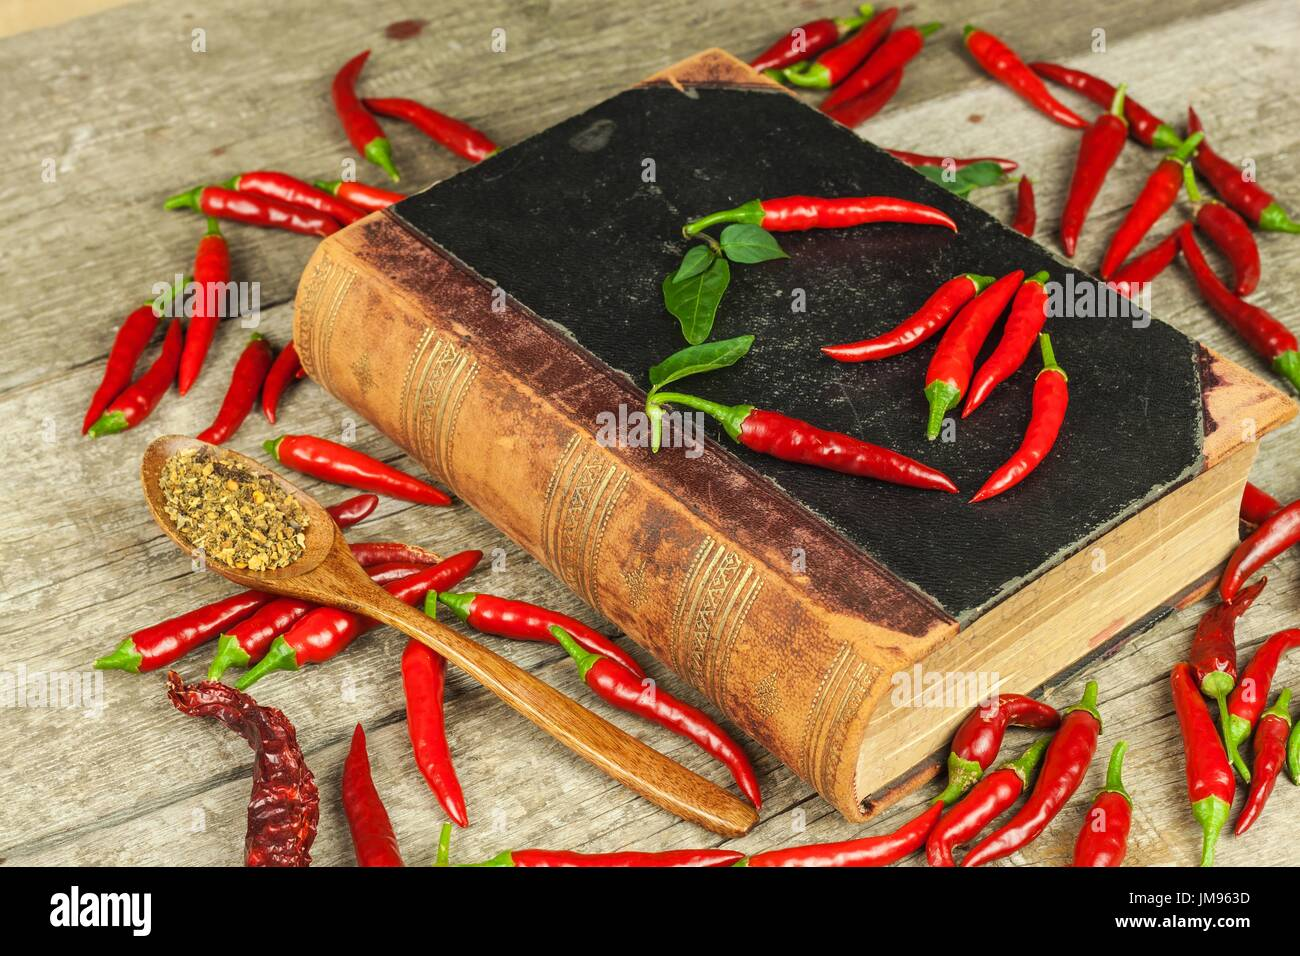 Book of old cookery recipes and fresh chili peppers spicy cuisine book of old cookery recipes and fresh chili peppers spicy cuisine mexican food forumfinder Gallery